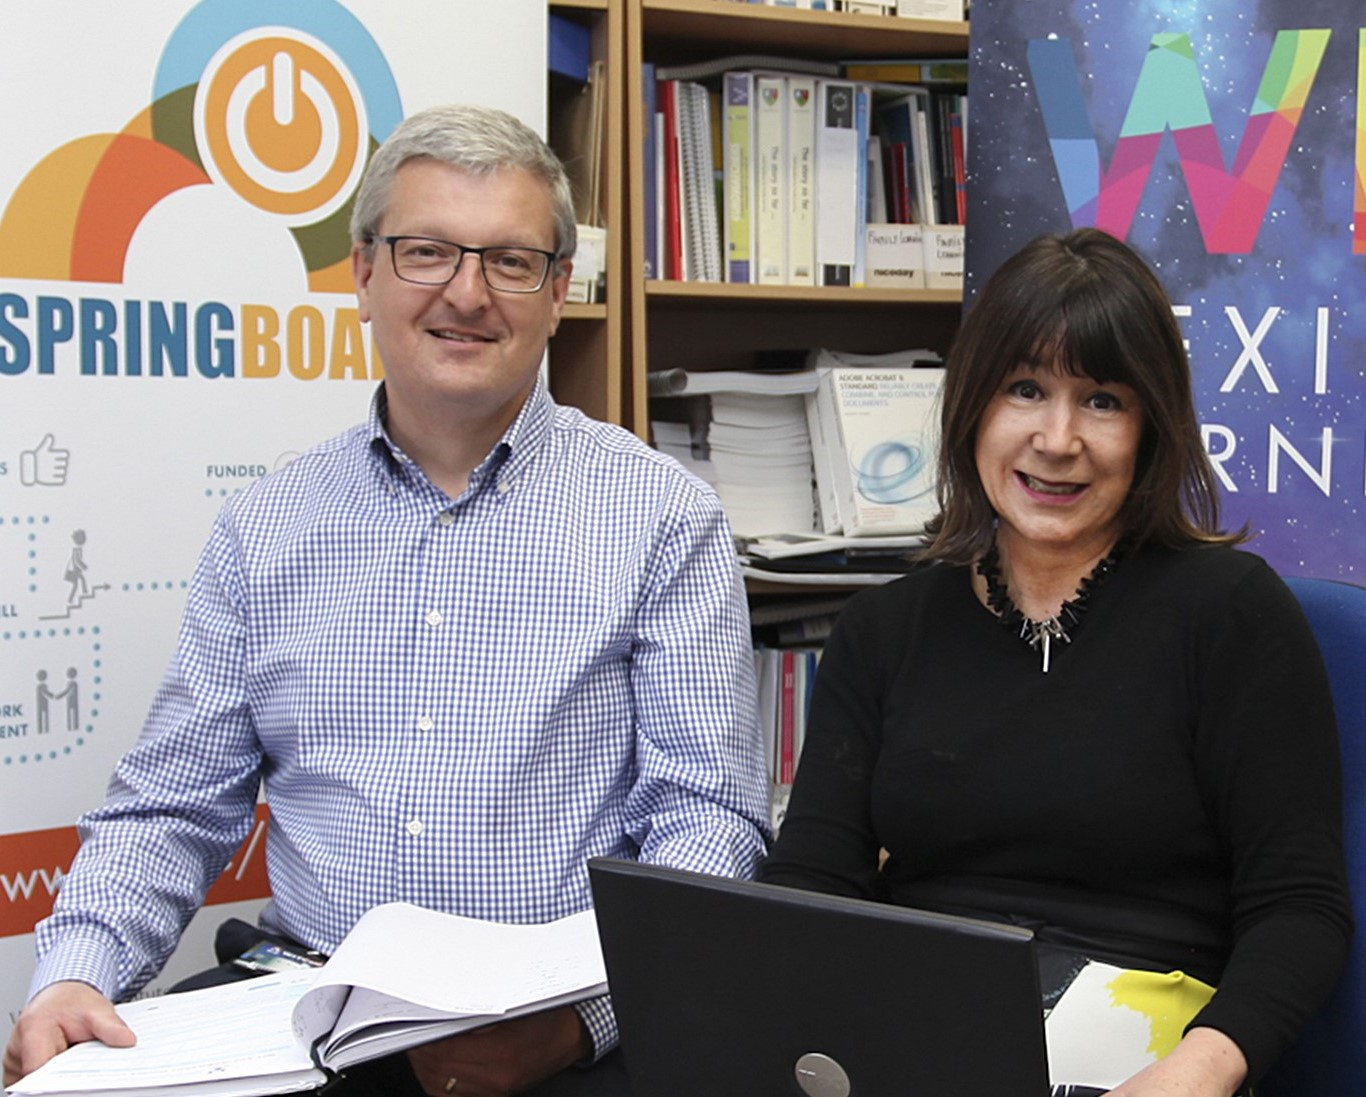 Pictured from left are: Neil Quinlan, Head of the Department of Lifelong Learning and Dr Helen Murphy, Head of the School of Education and Lifelong Learning in WIT